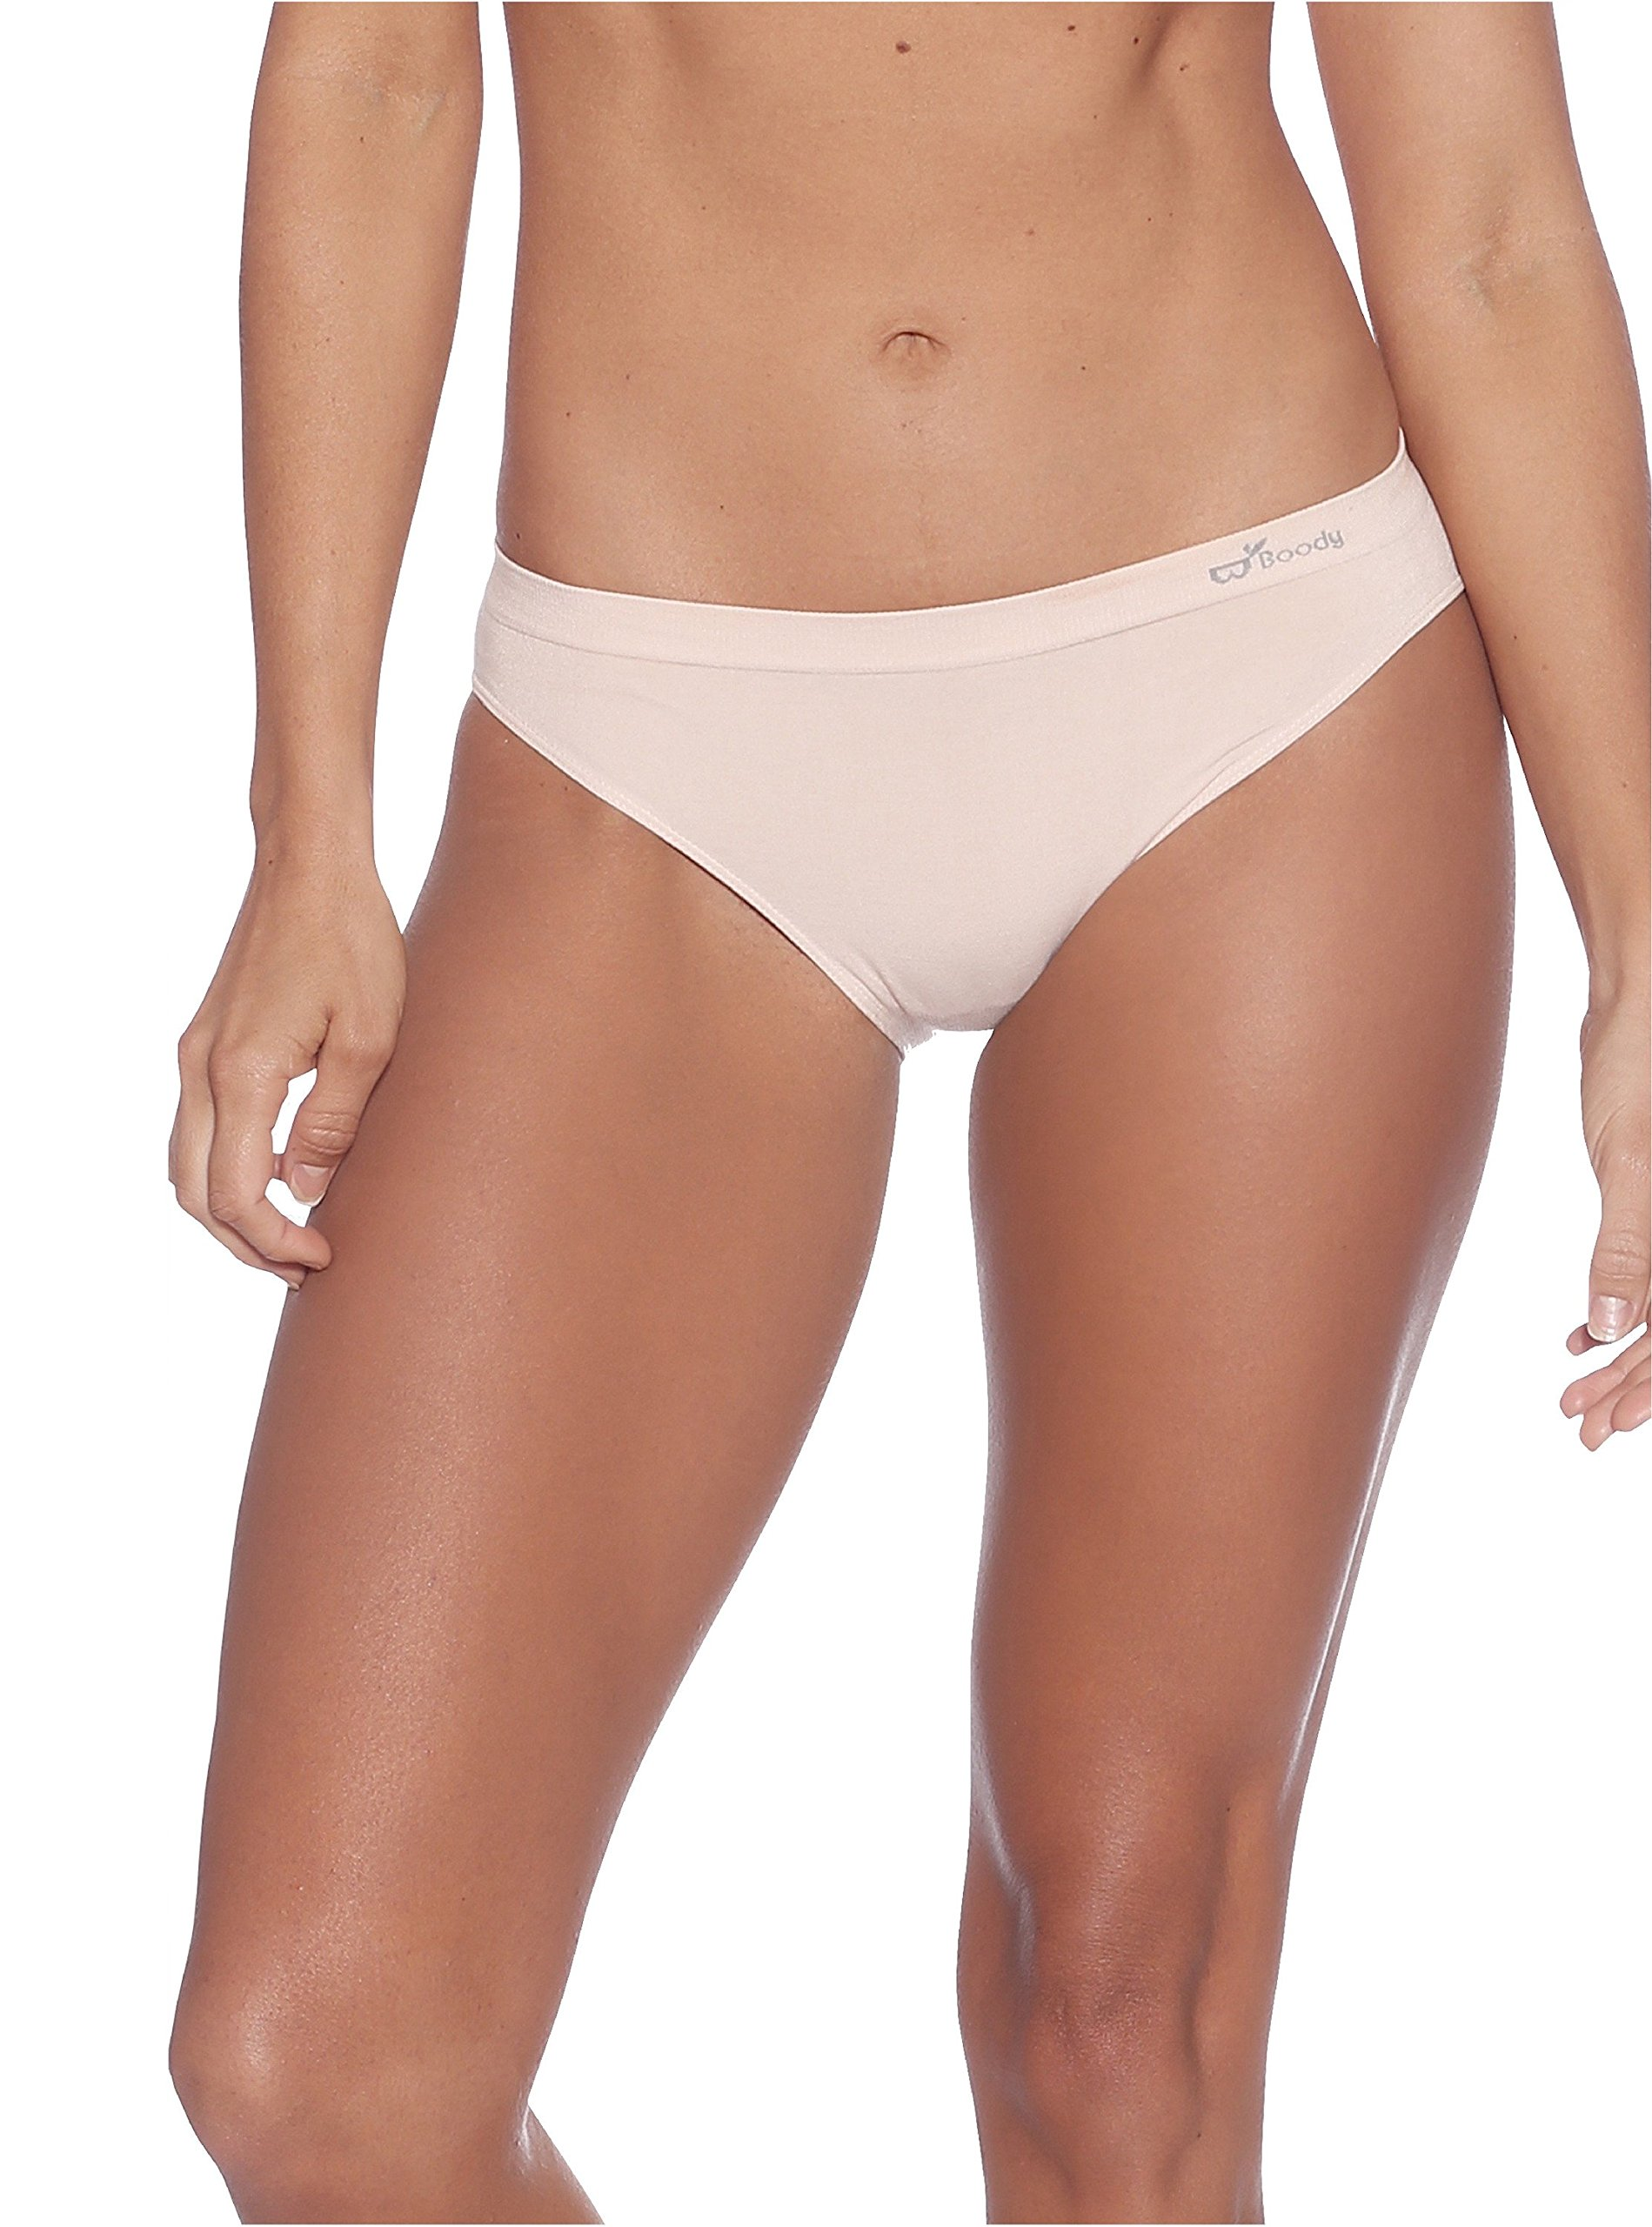 Boody Body EcoWear Women's Classic Bikini Seamless Underwear Made from Natural Organic Bamboo Viscose – Soft Breathable Eco Fashion for Sensitive Skin - Beige, Extra Small